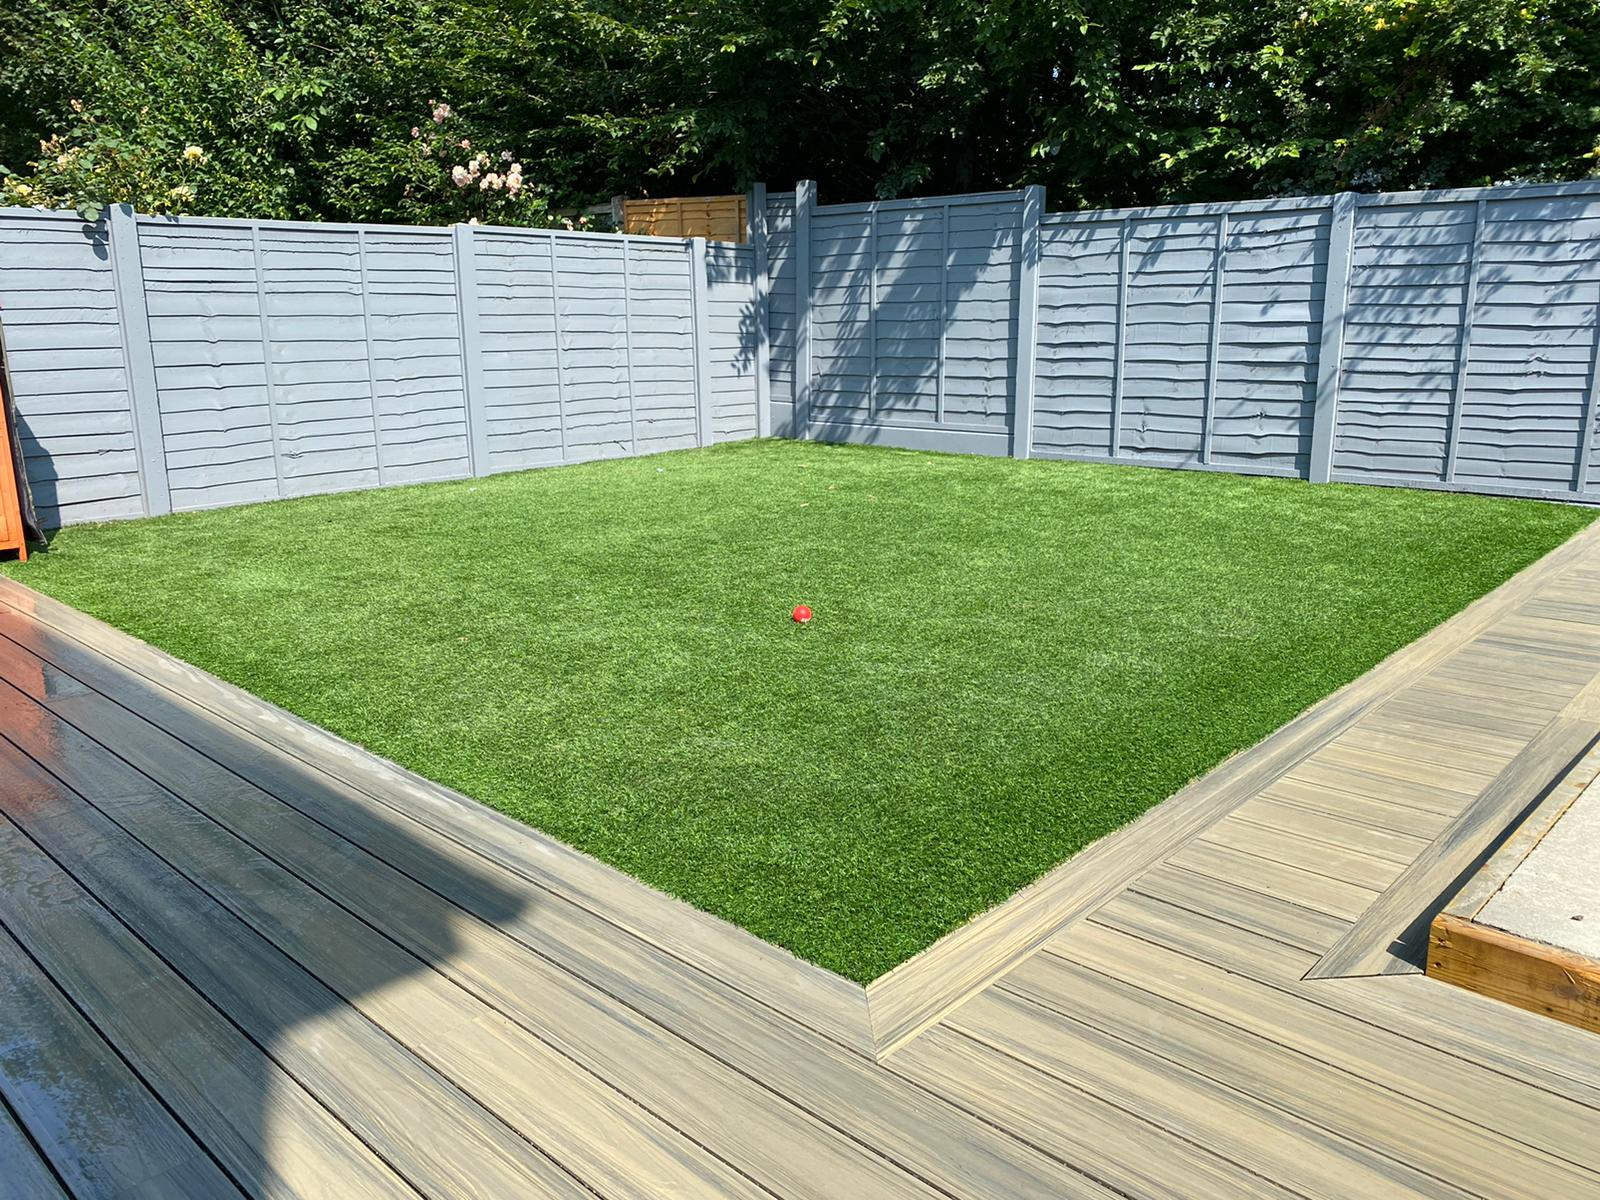 composite decking with the look and feel of timber